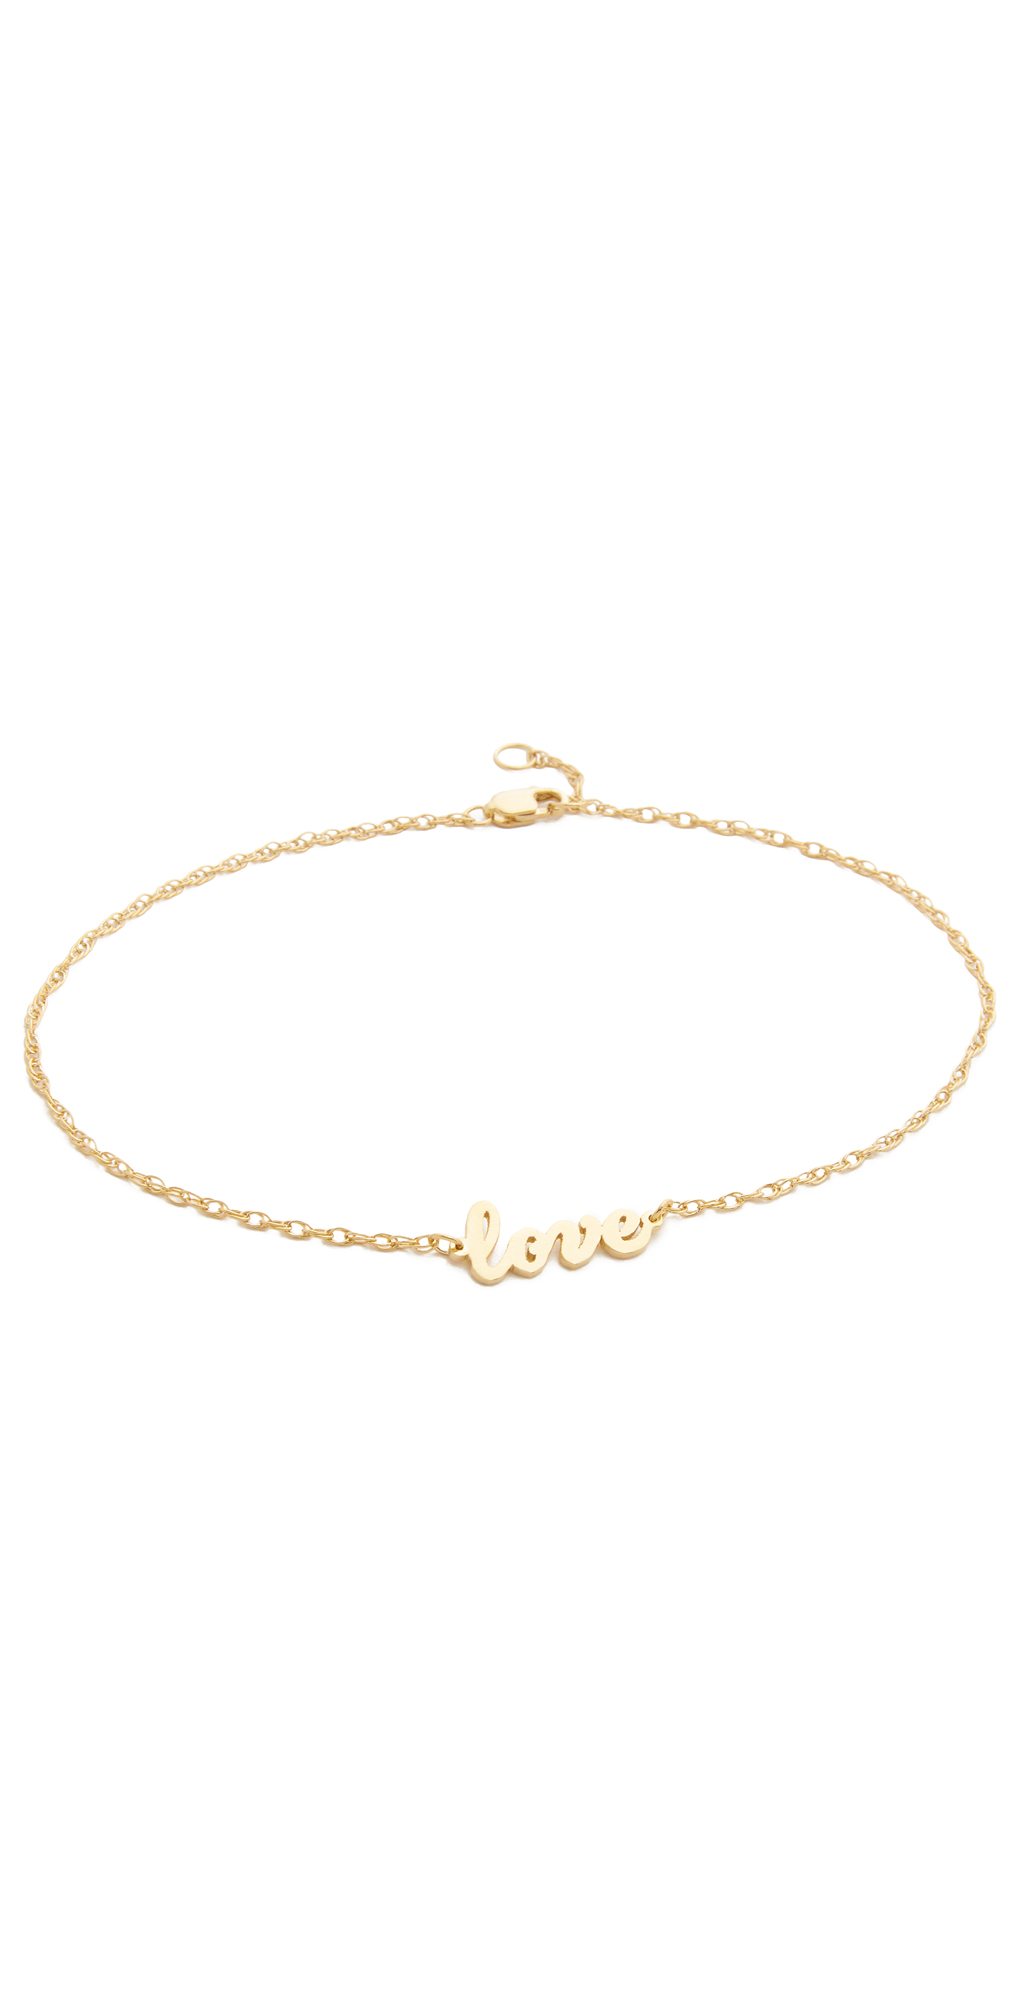 Love Anklet Jennifer Zeuner Jewelry